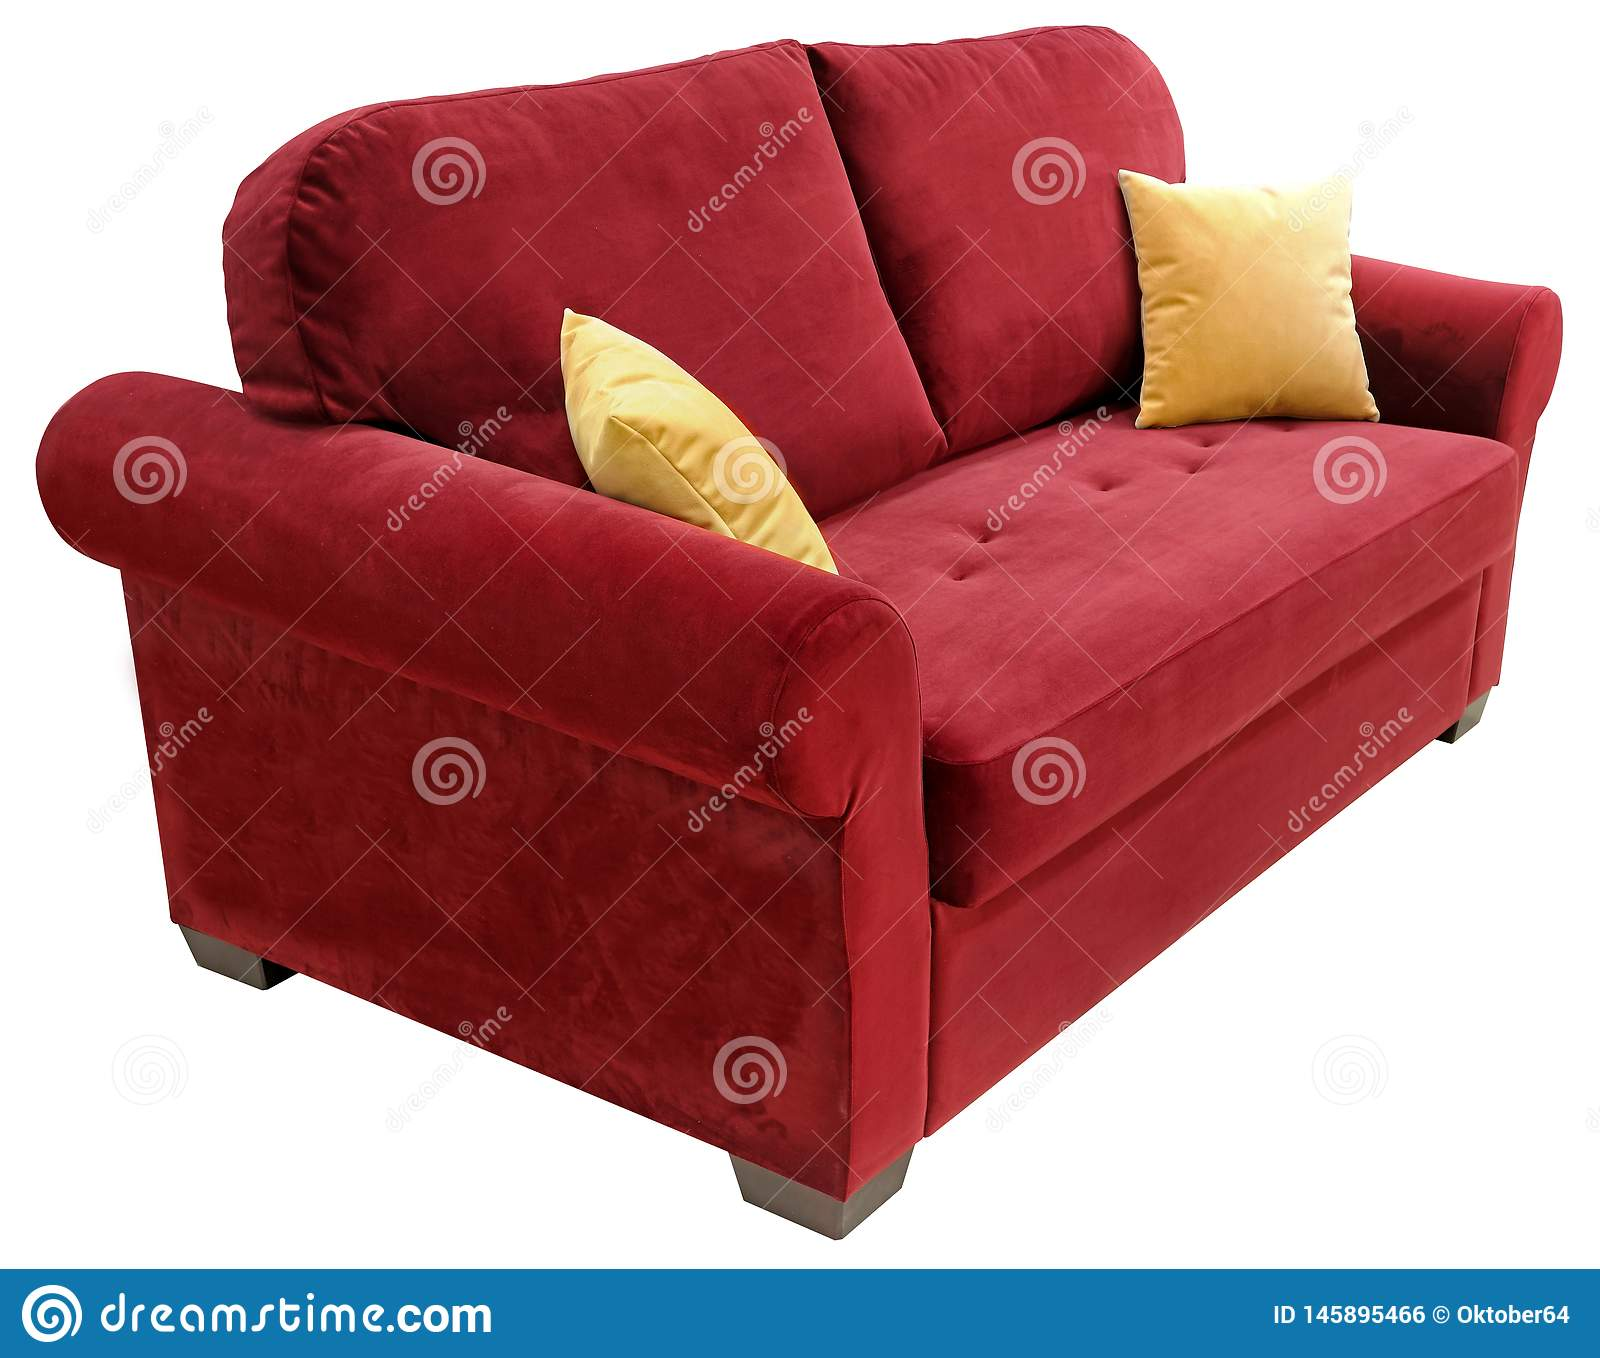 Red Sofa Isolated On White Background On The Couch Yellow Decorative Pillows Stock Photo Image Of Home Isolate 145895466